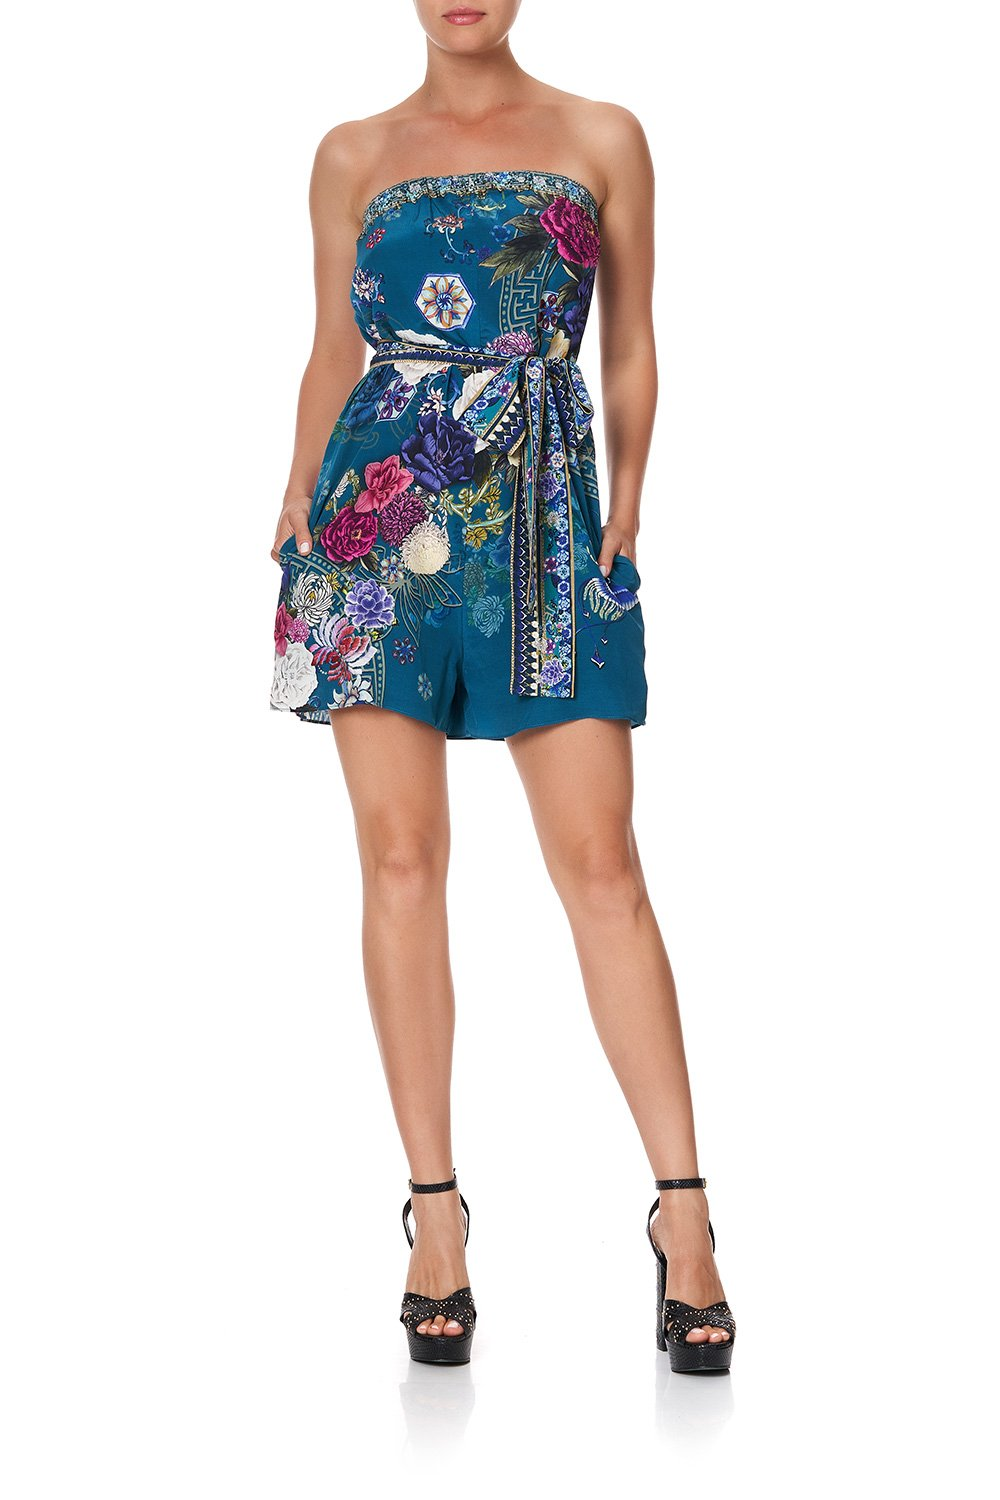 STRAPLESS PLAYSUIT WITH WAIST TIE LUNAR GAZING